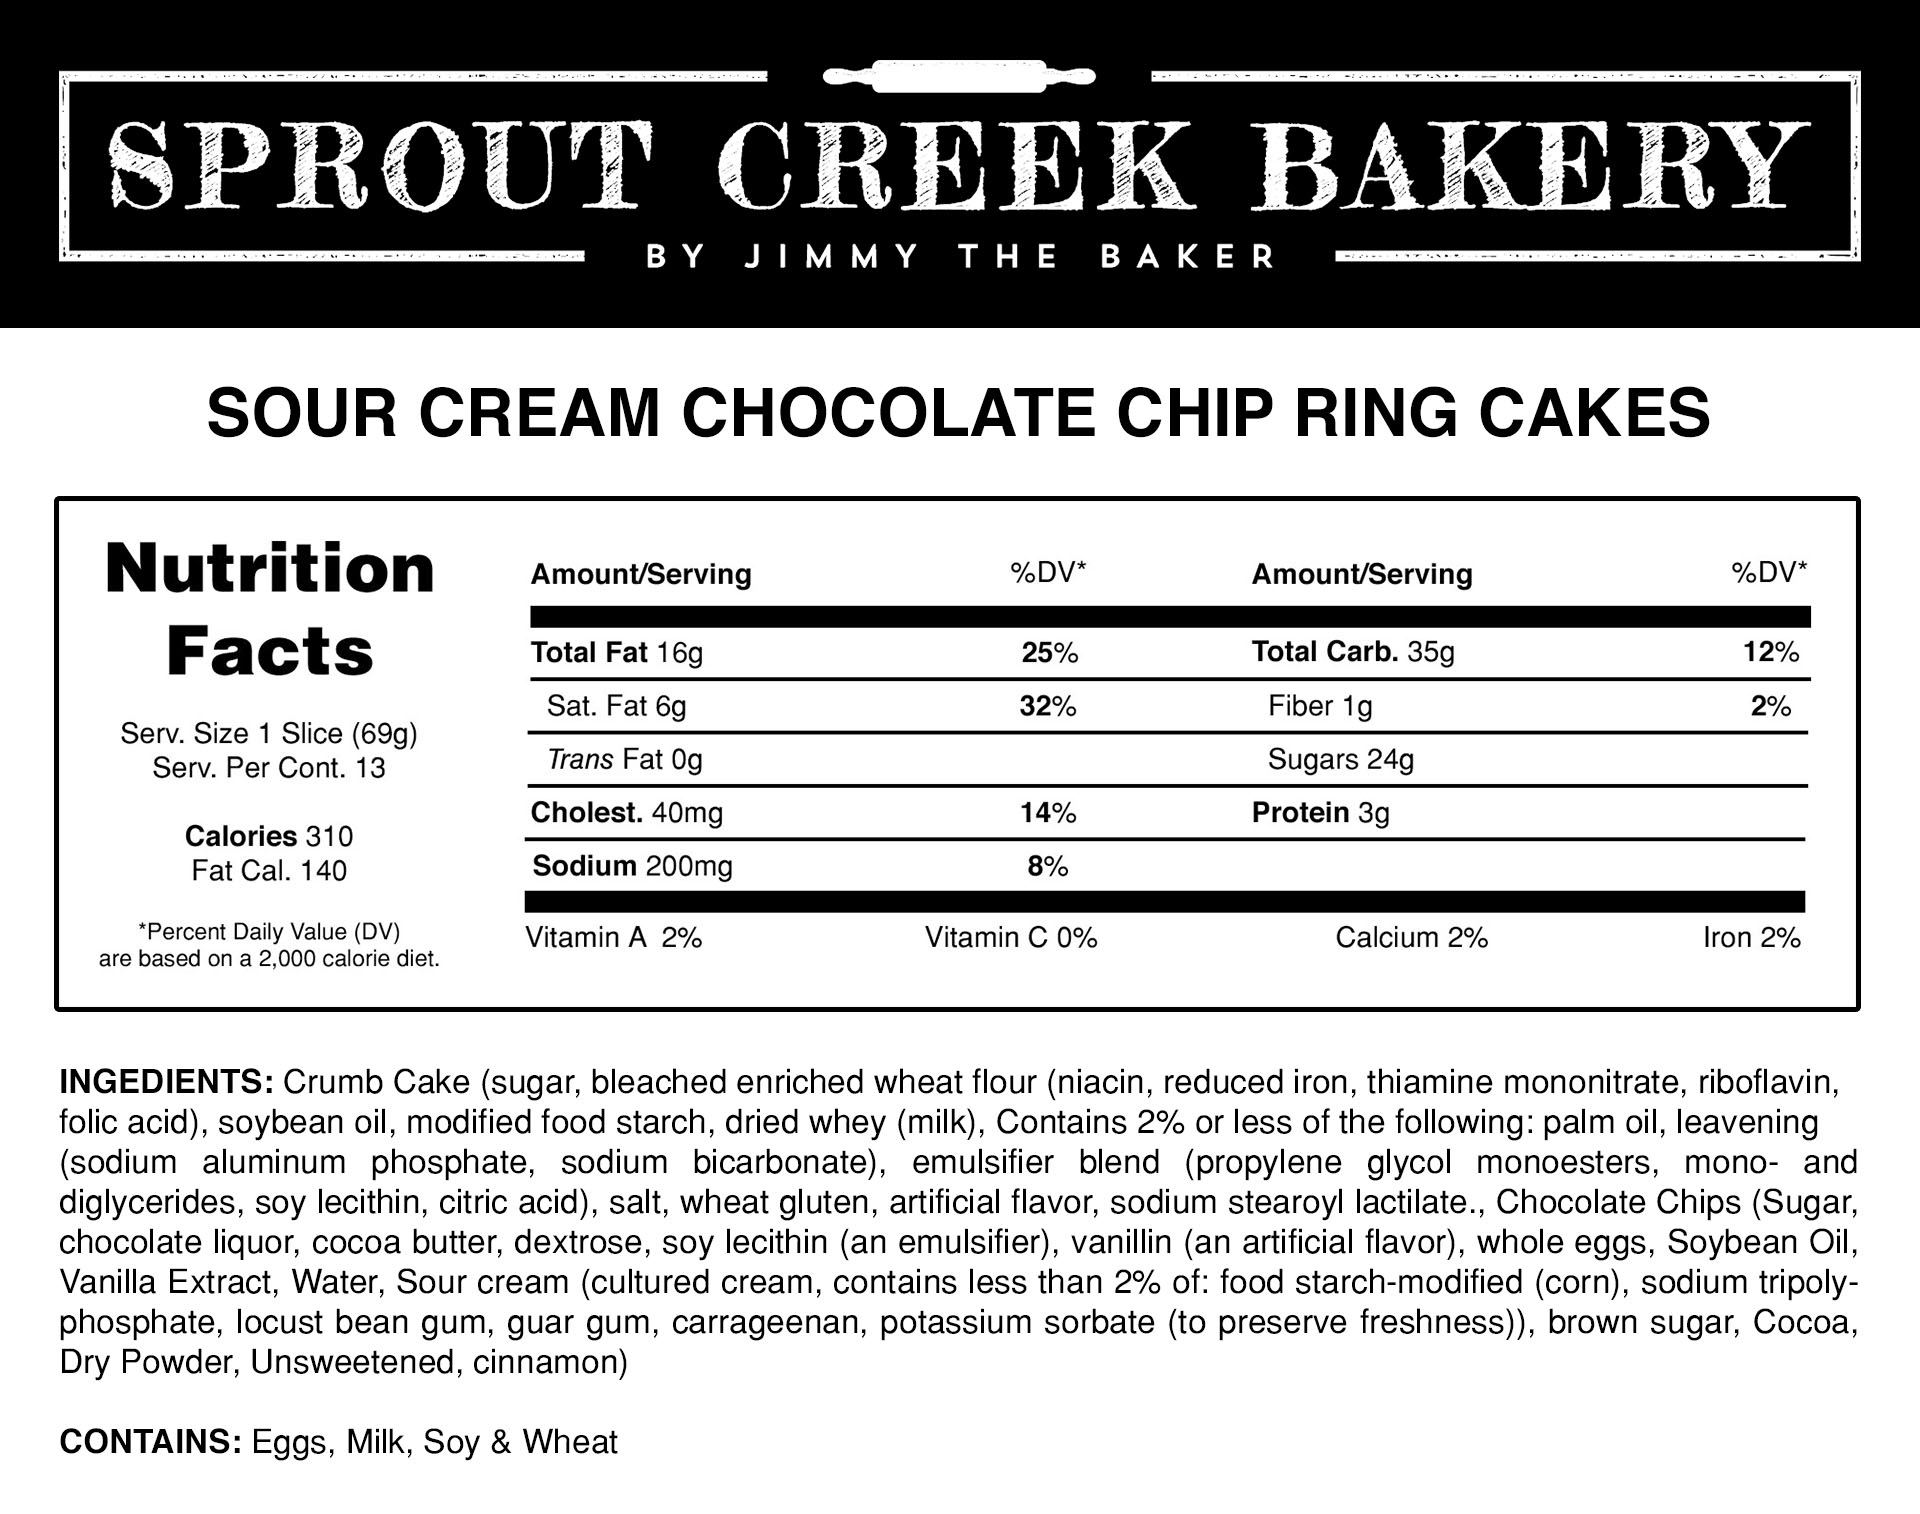 Sour Cream Chocolate Chip Ring Cake Nutrition Facts